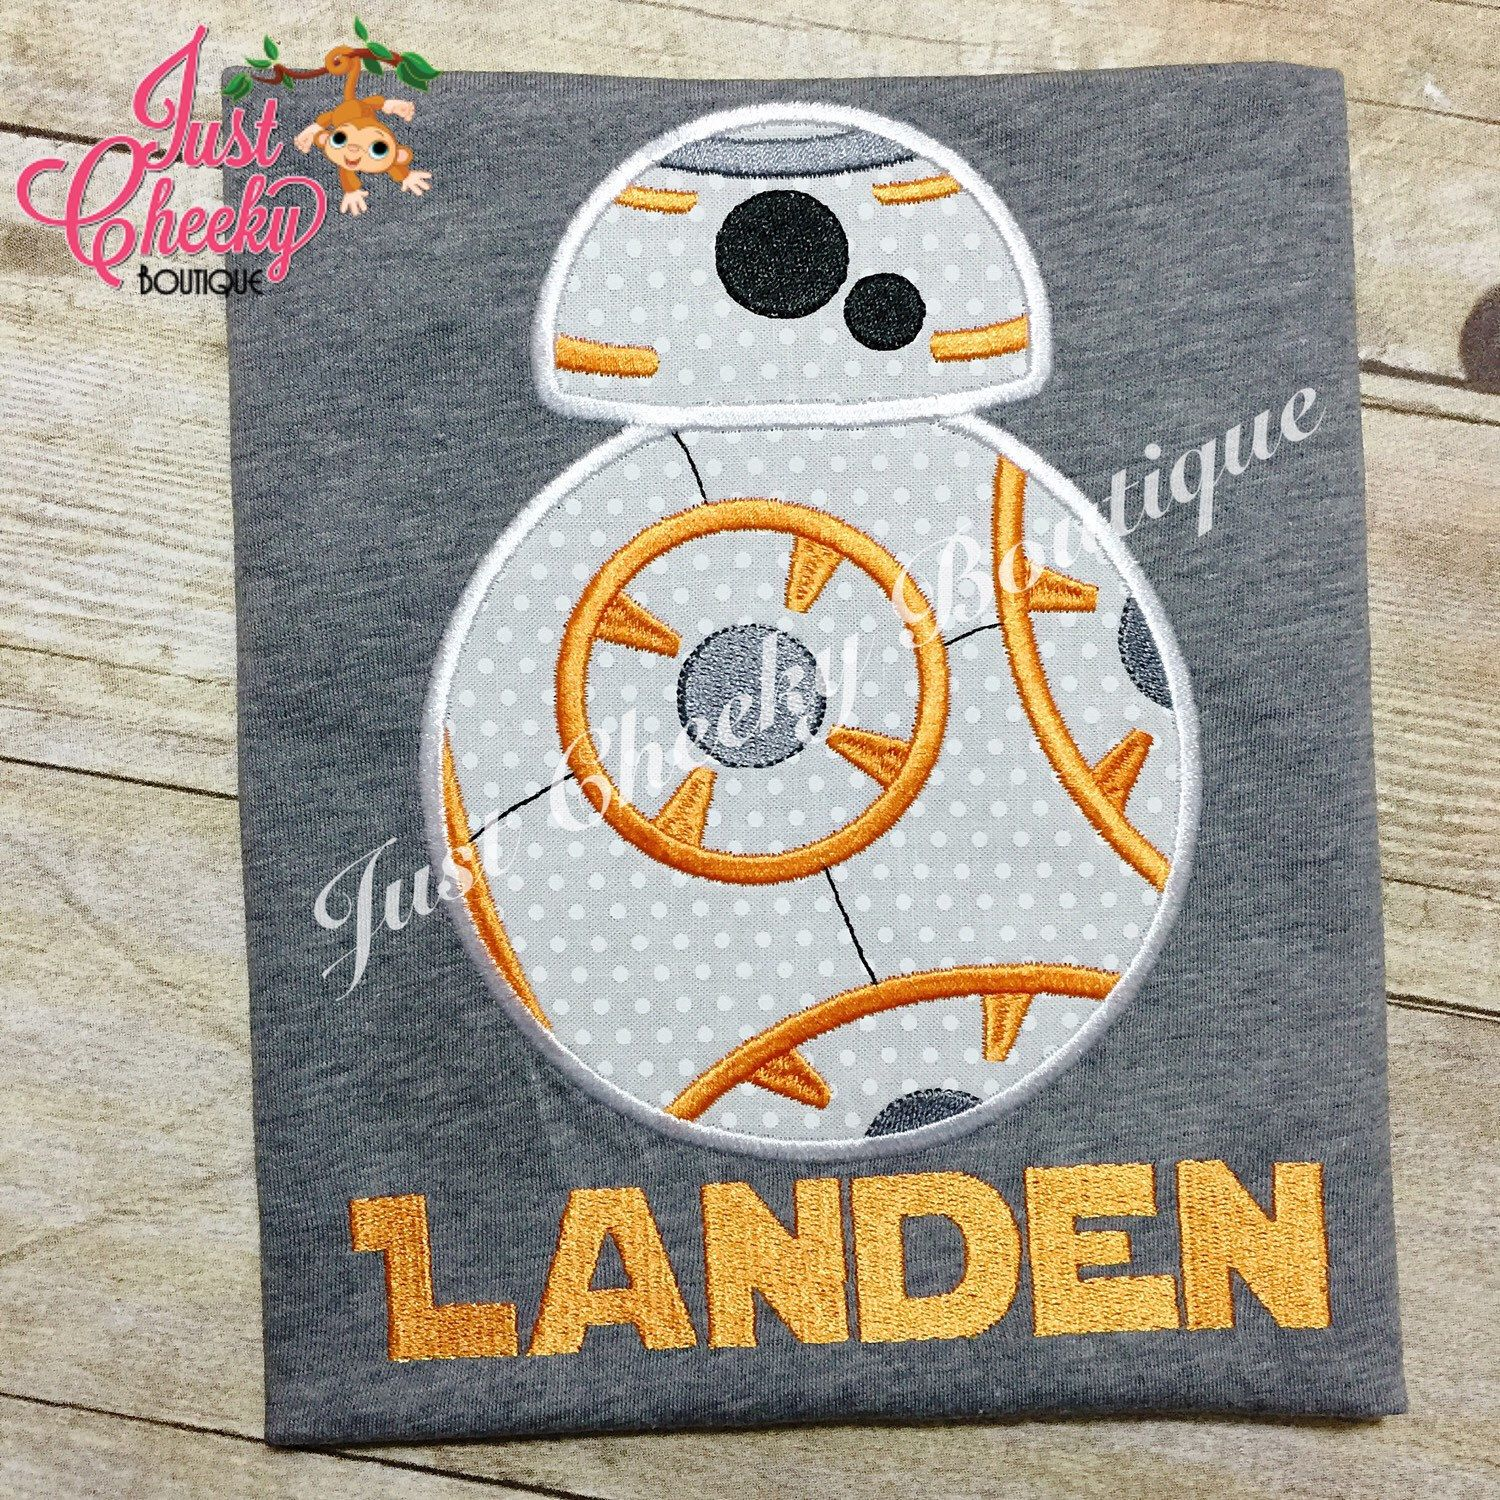 BB8 Inspired - Star Wars Inspired - Kids Embroidered Shirt - Force Friday Shirt - The Force Awakens by JustCheekyBoutiqueTX on Etsy https://www.etsy.com/listing/263298588/bb8-inspired-star-wars-inspired-kids